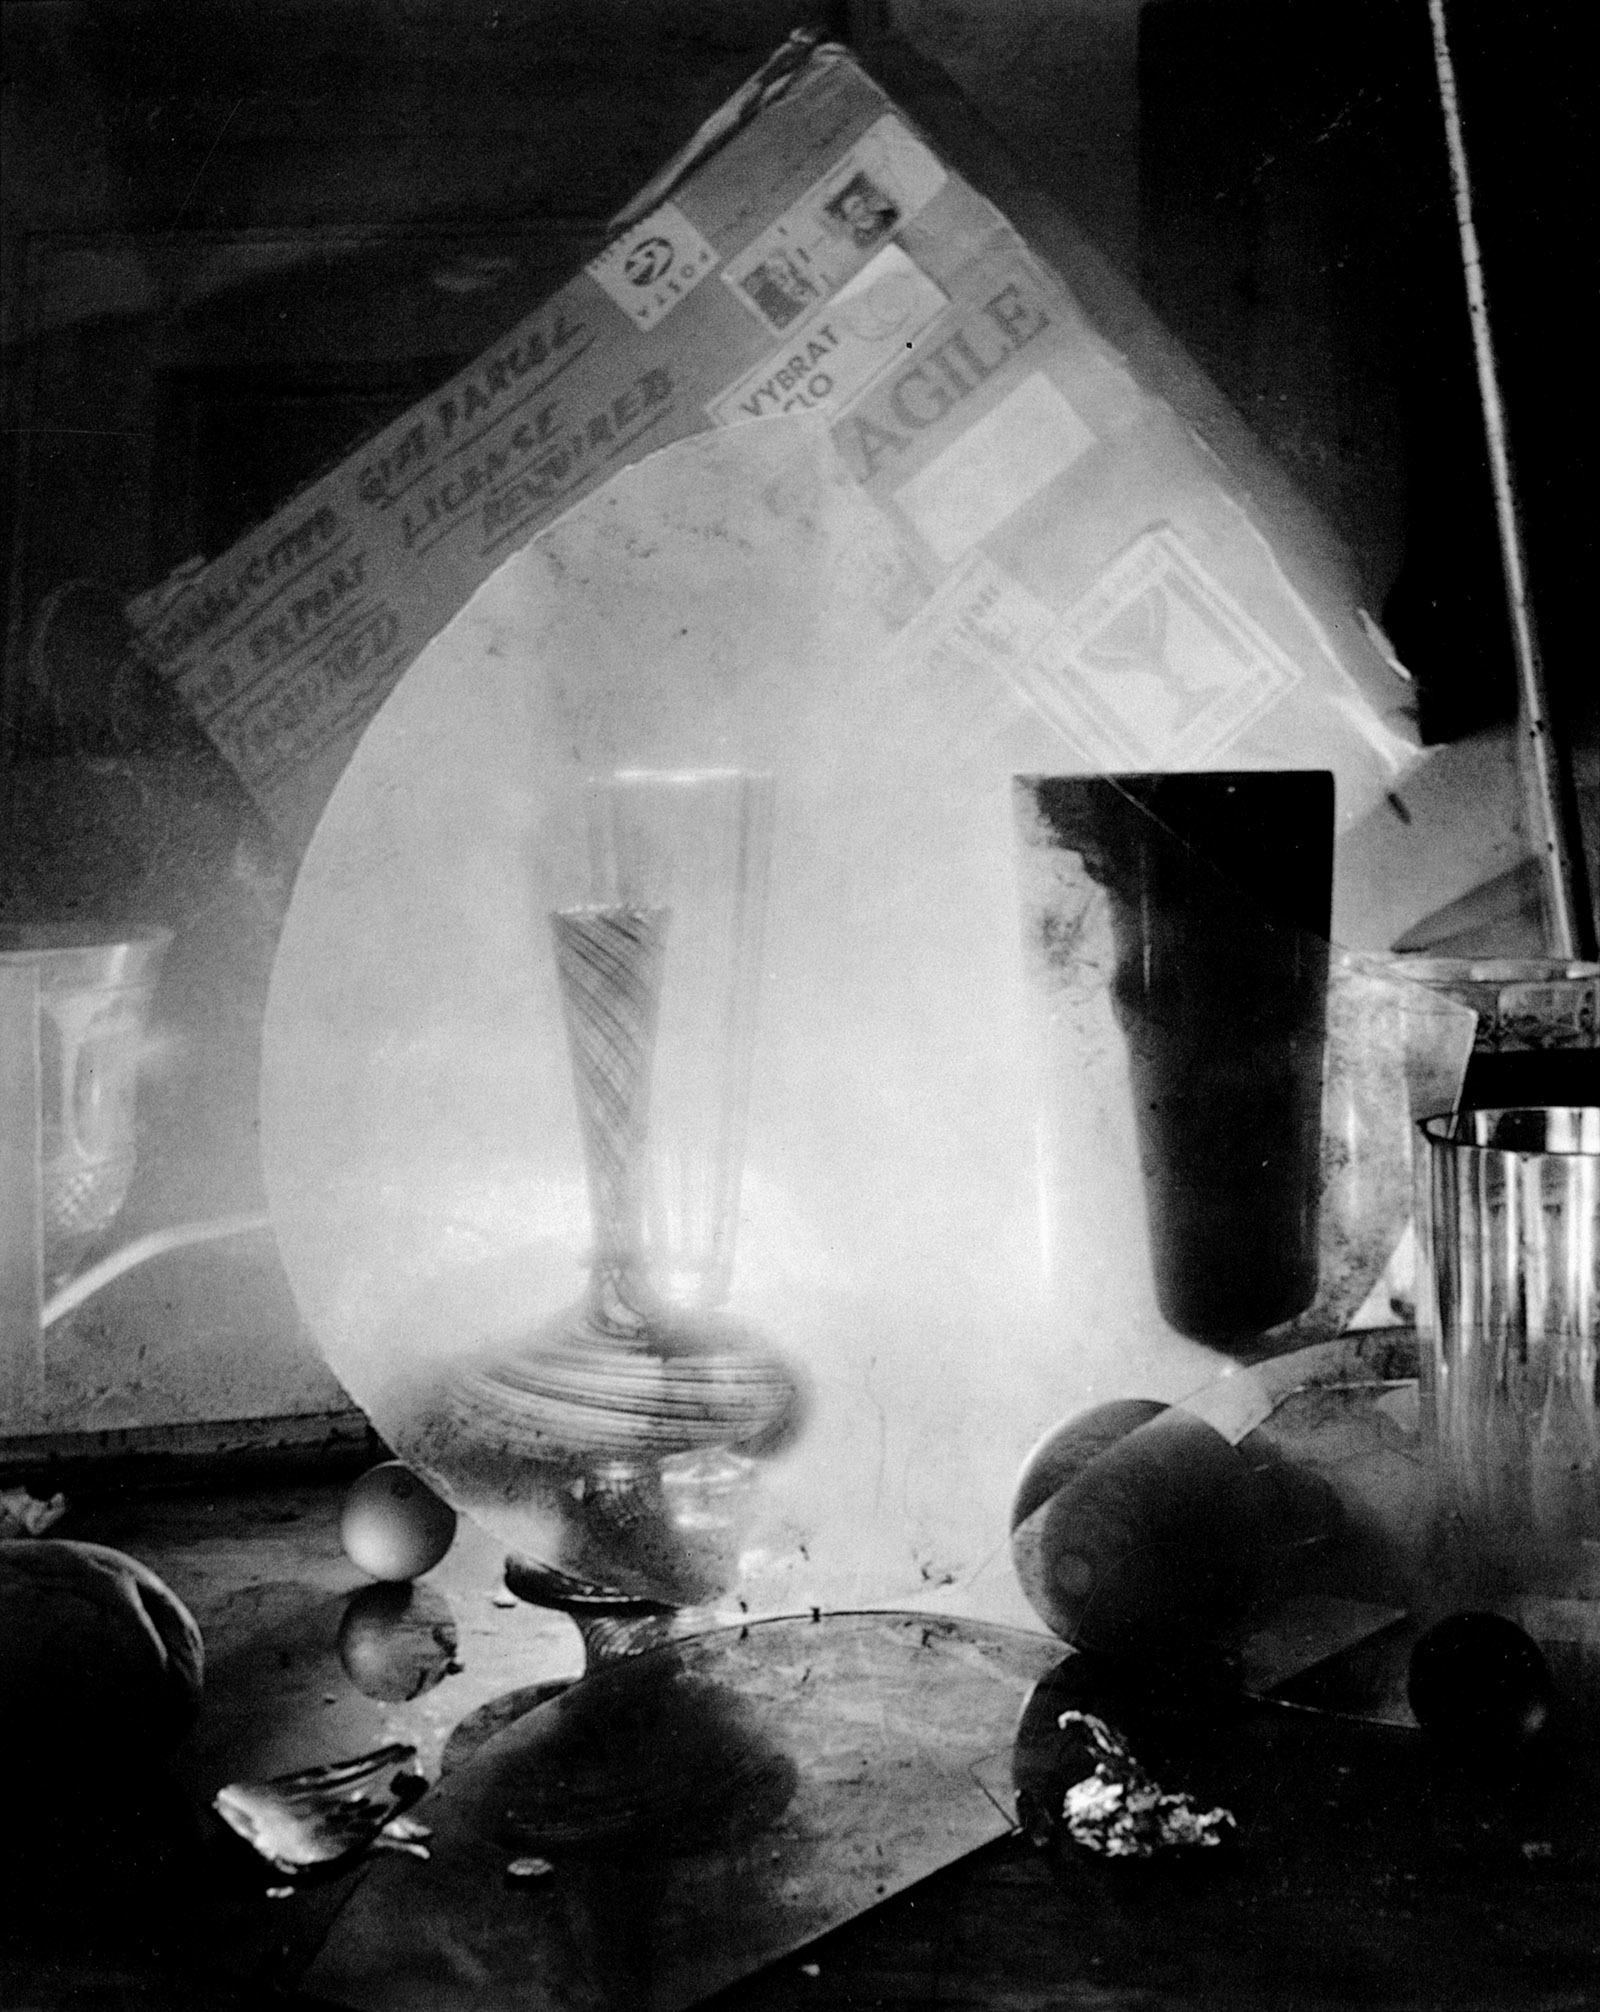 Photograph by Josef Sudek from his 'Glass Labyrinths' series, 1963–1972